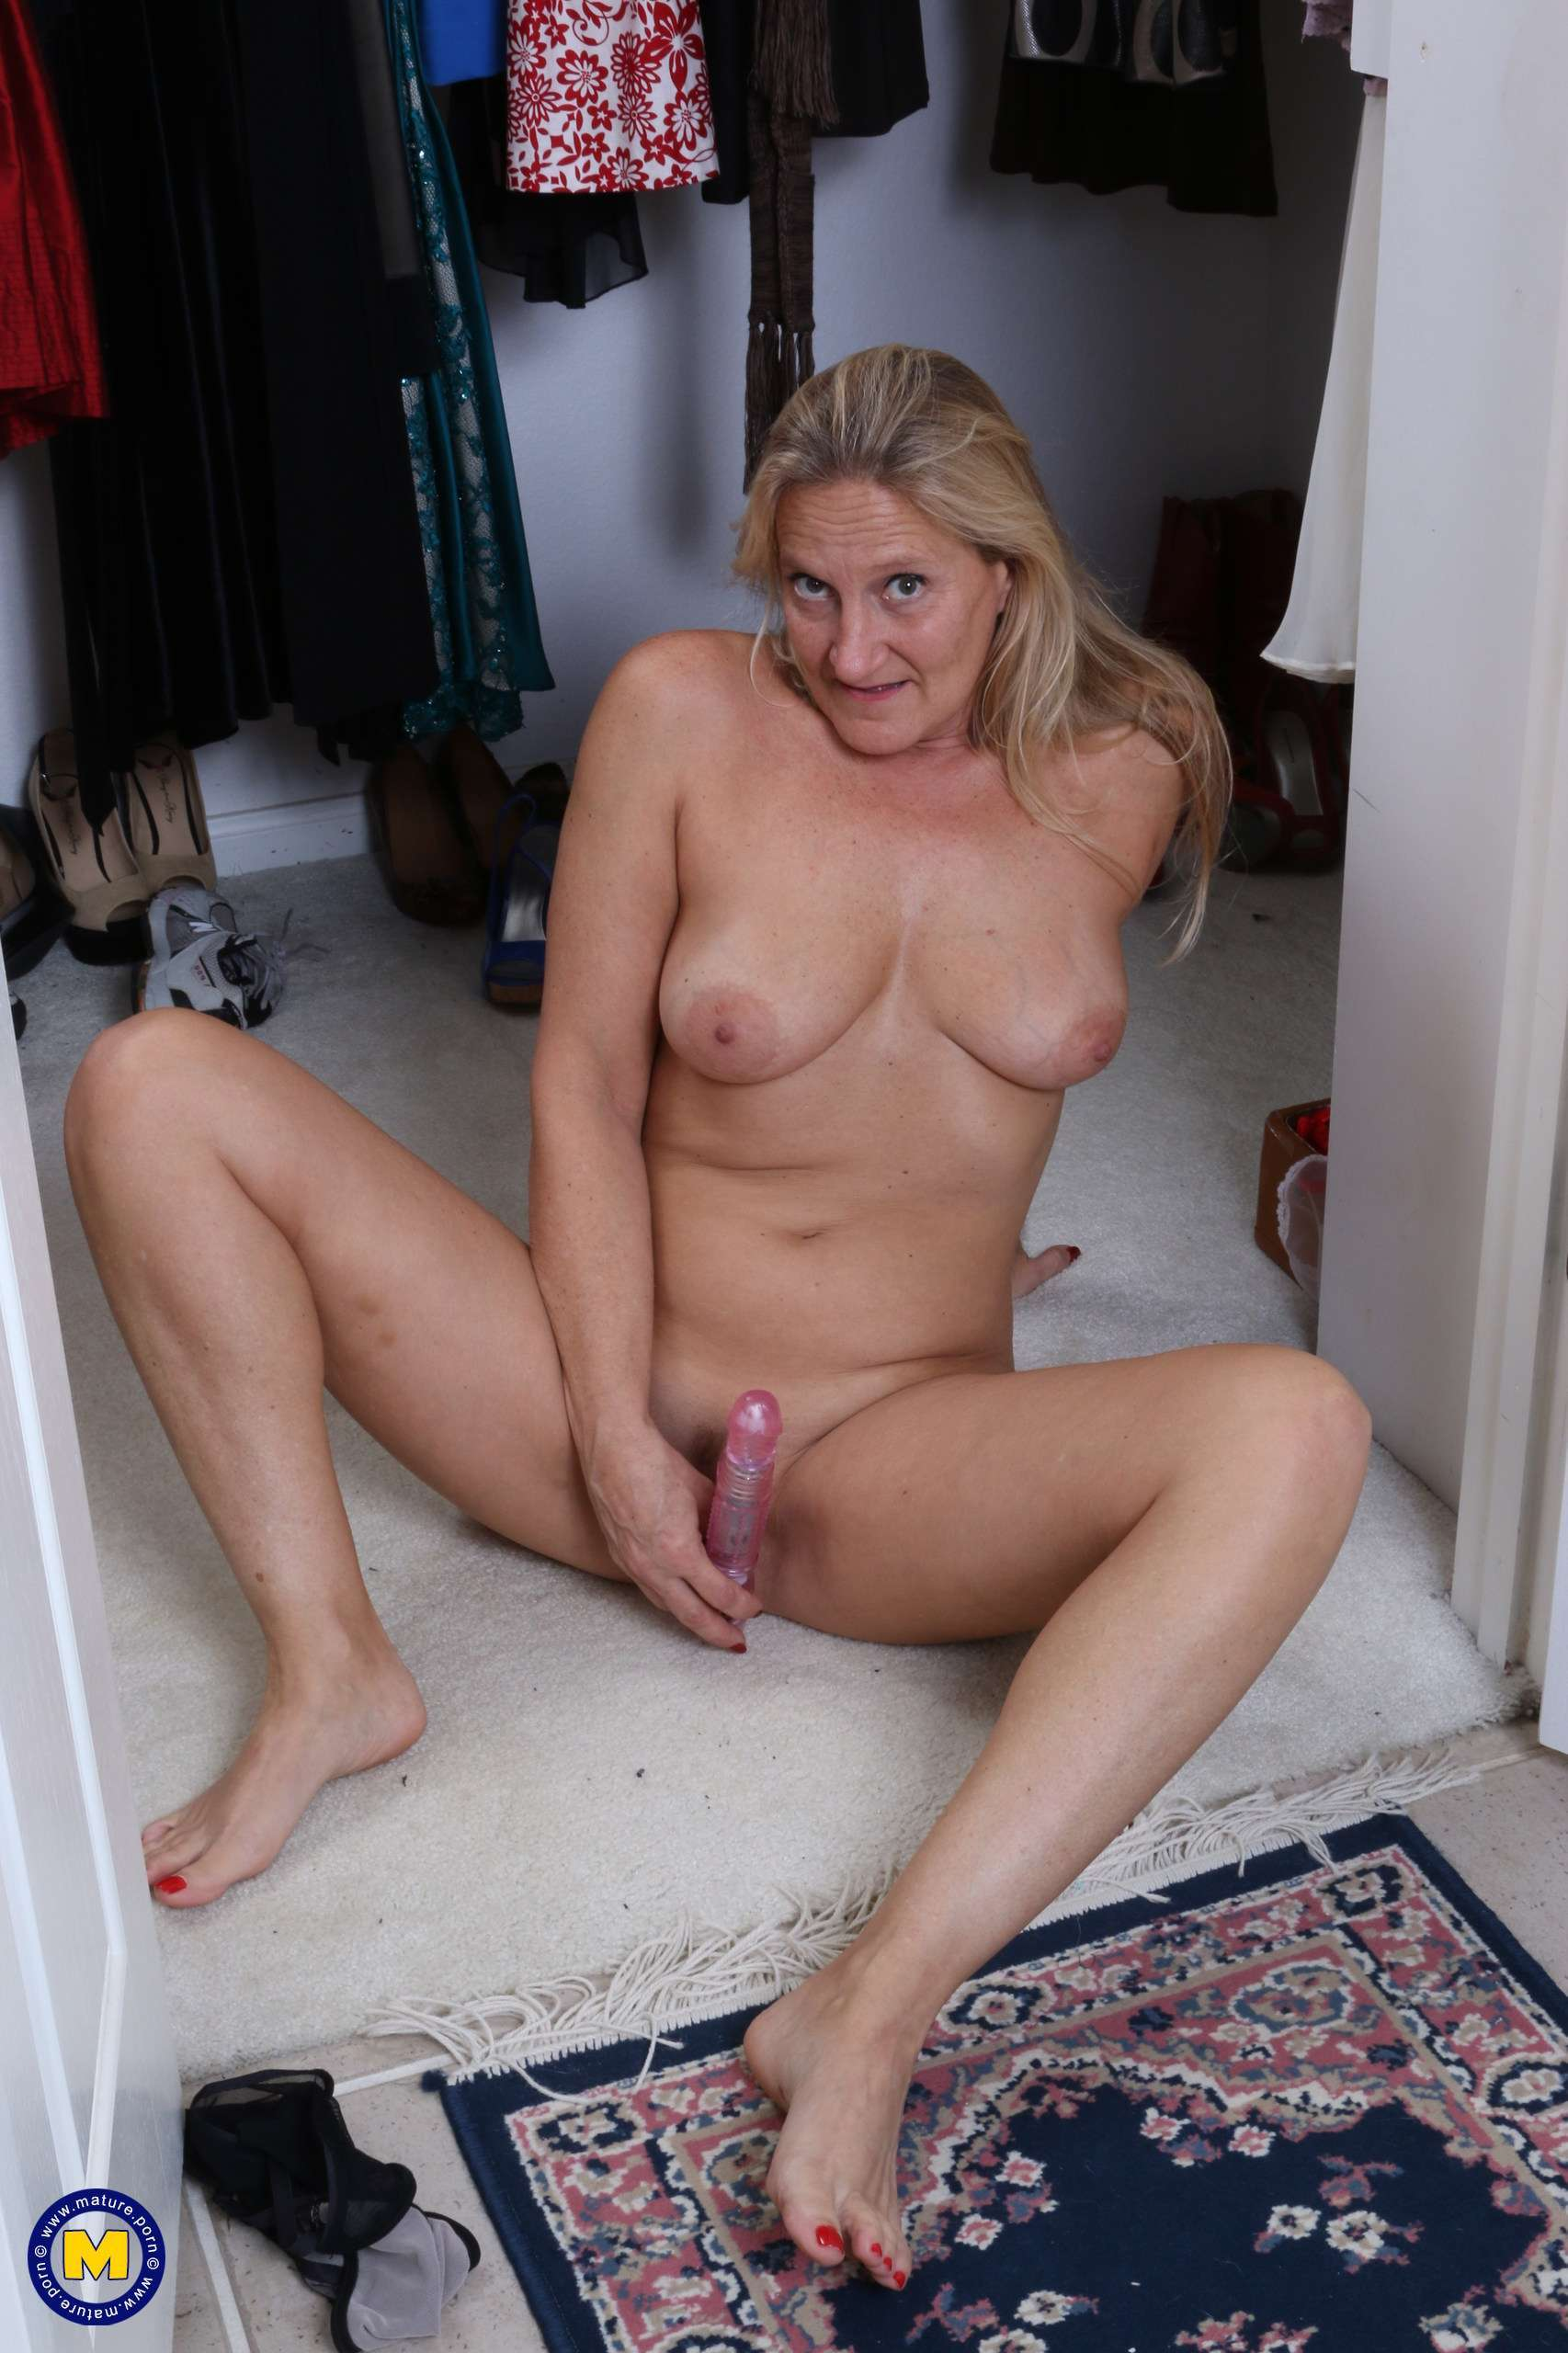 Naughty American mature lady playing with her pussy